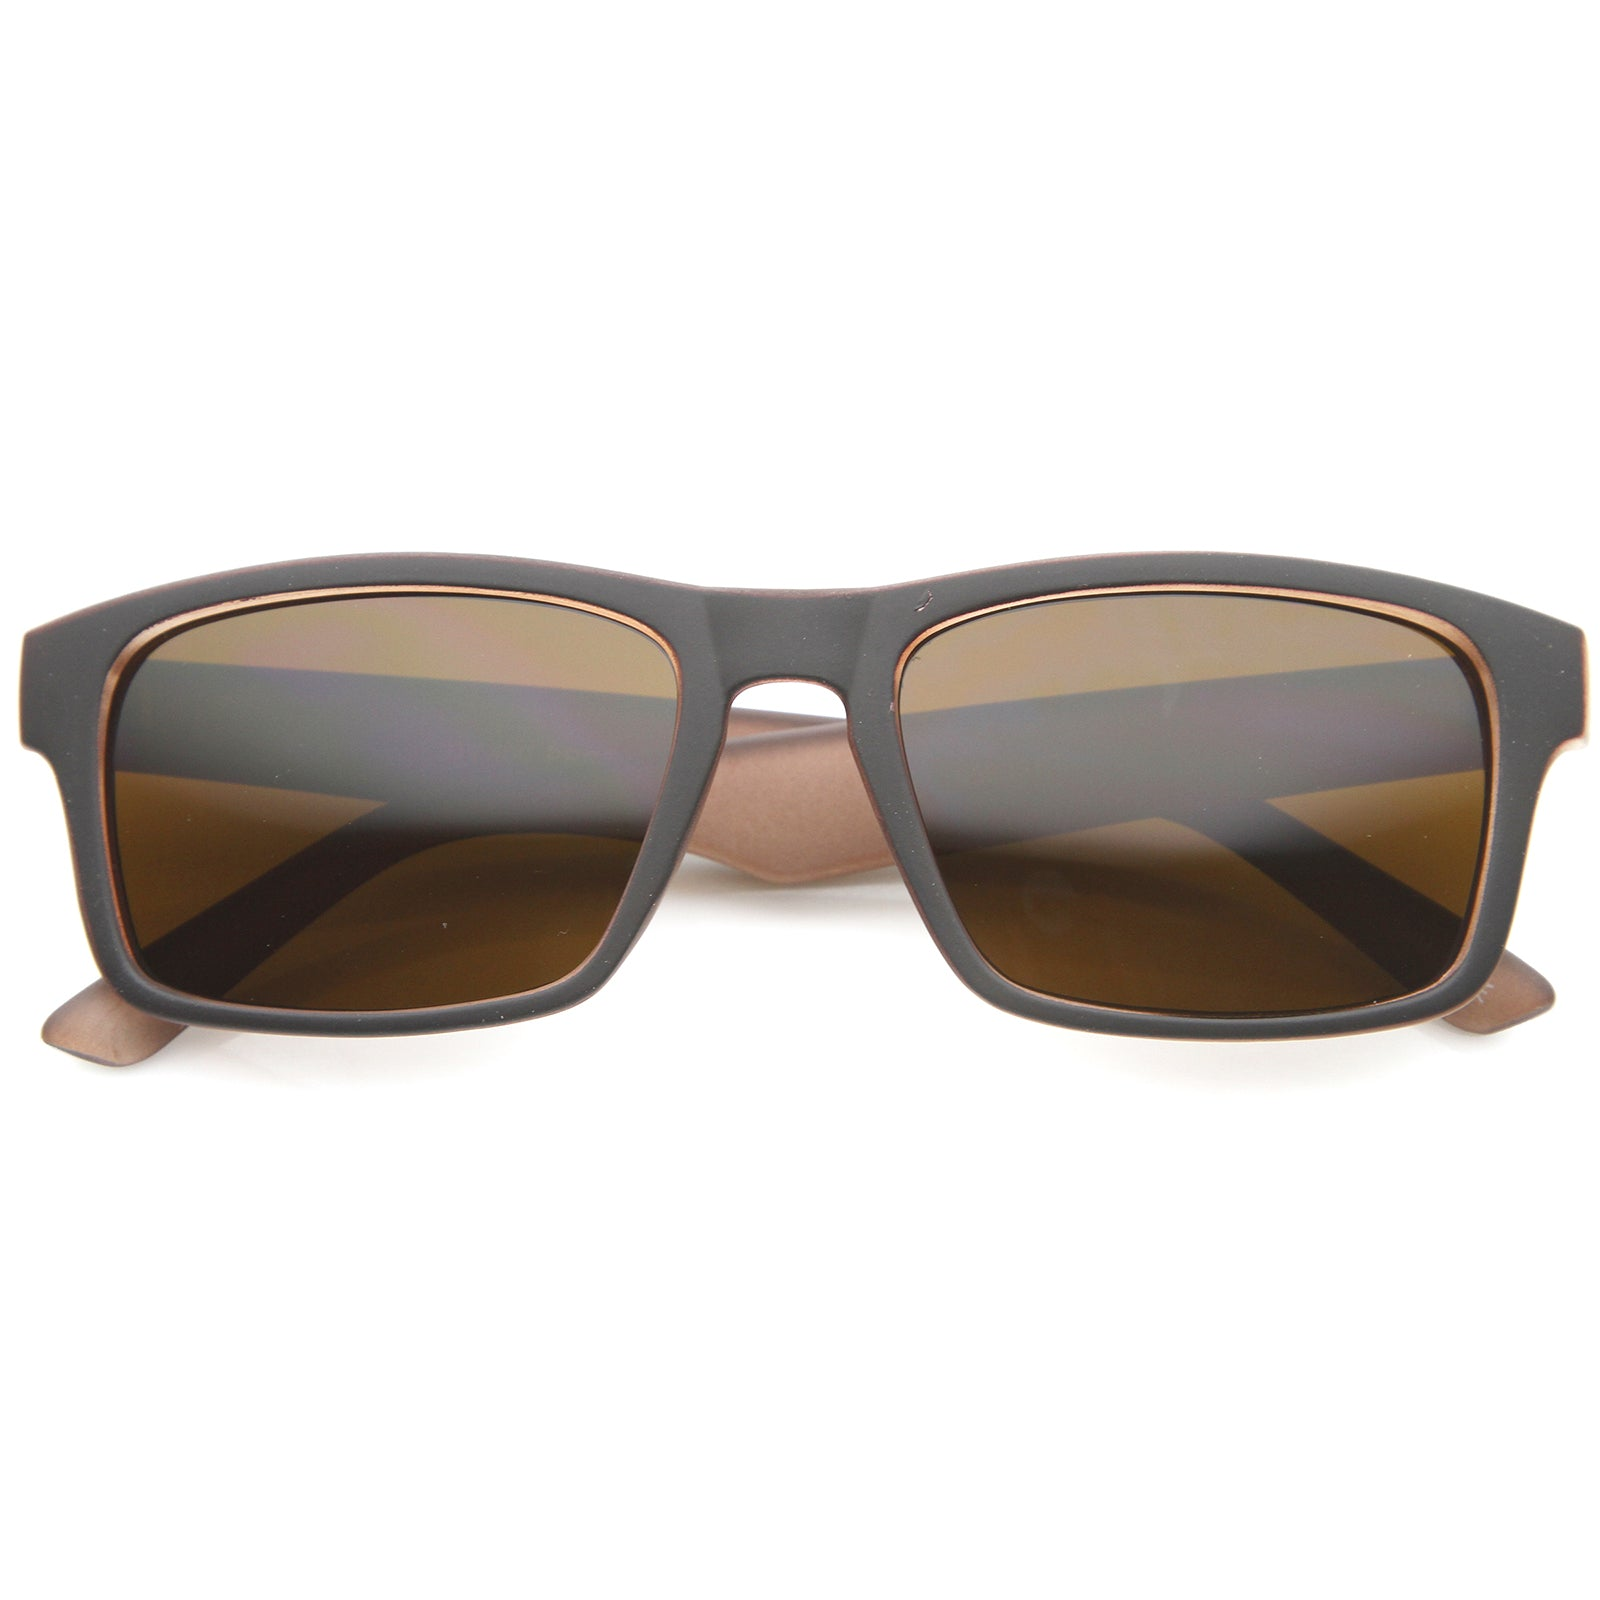 Mens Horn Rimmed Sunglasses With UV400 Protected Composite Lens - sunglass.la - 5